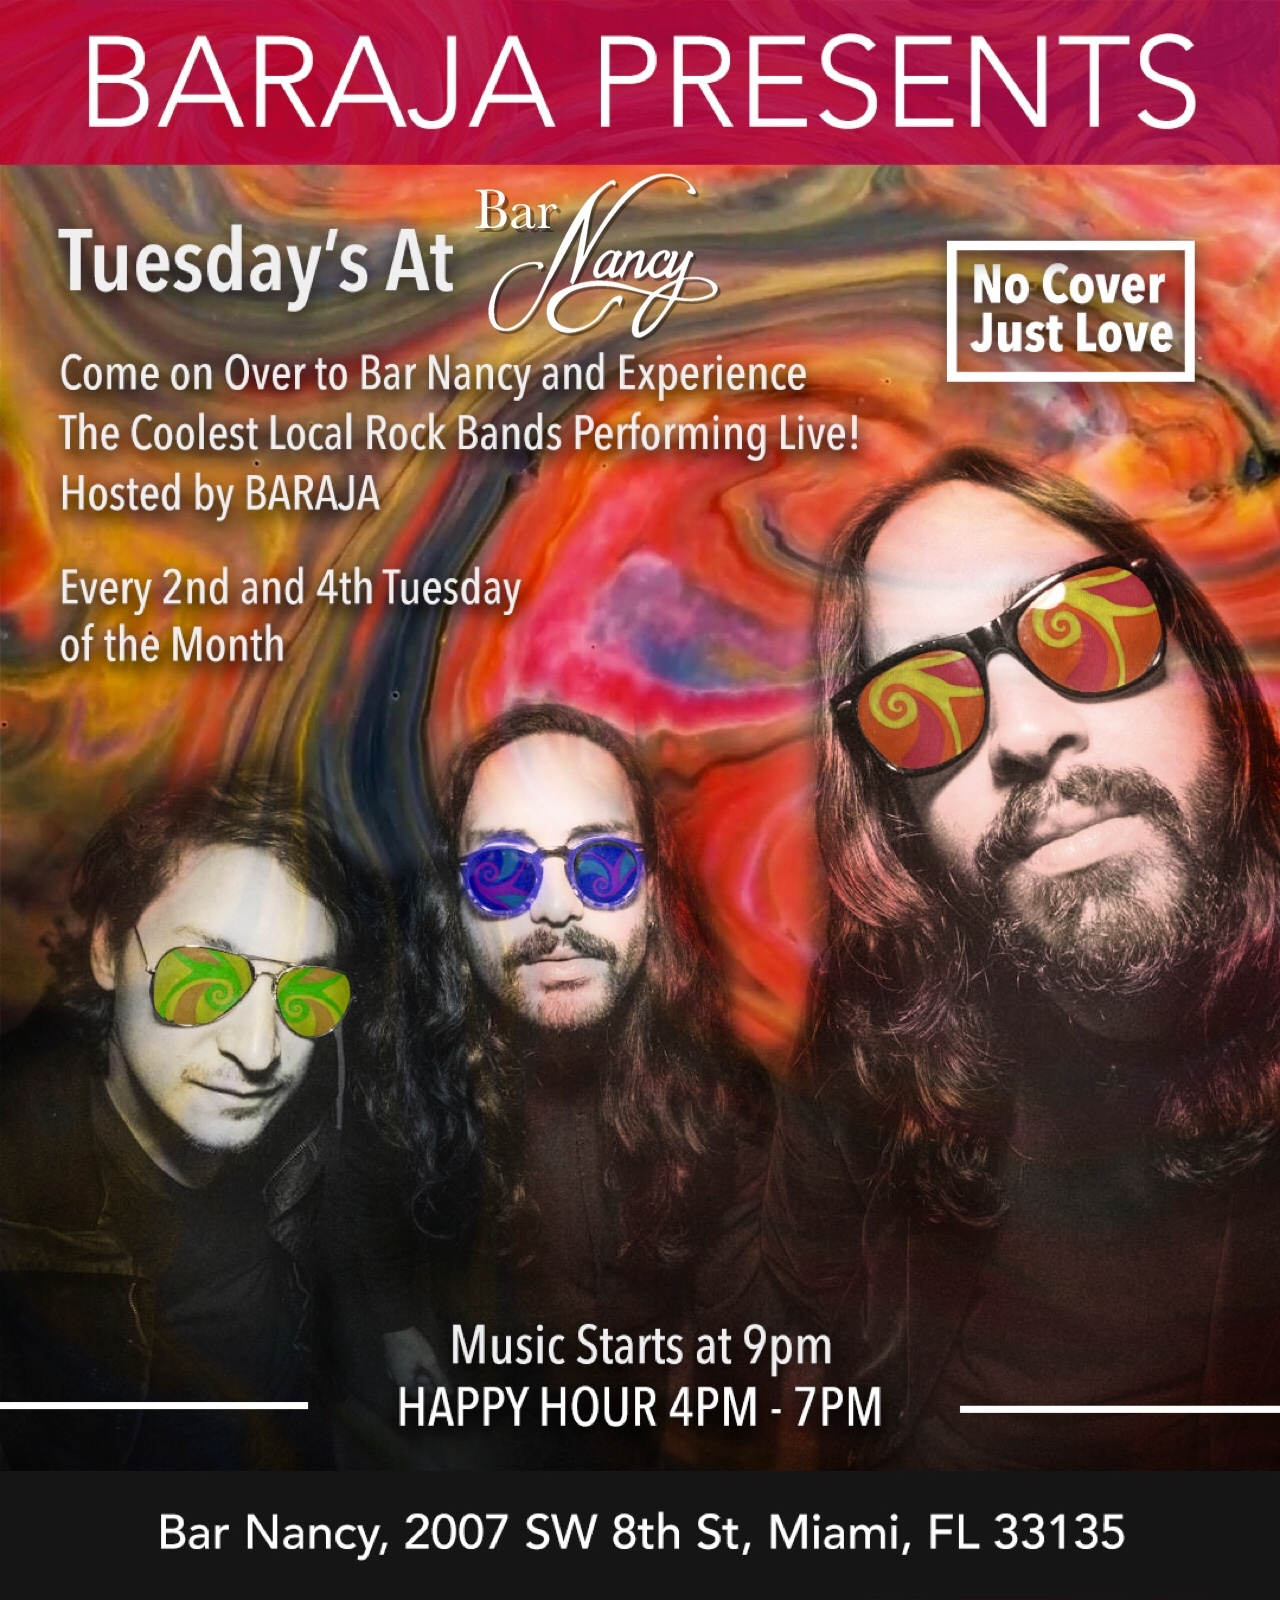 Baraja Presents Tuesday's at Bar Nancy! - Tuesday, April 9, 2019 at 9 PM